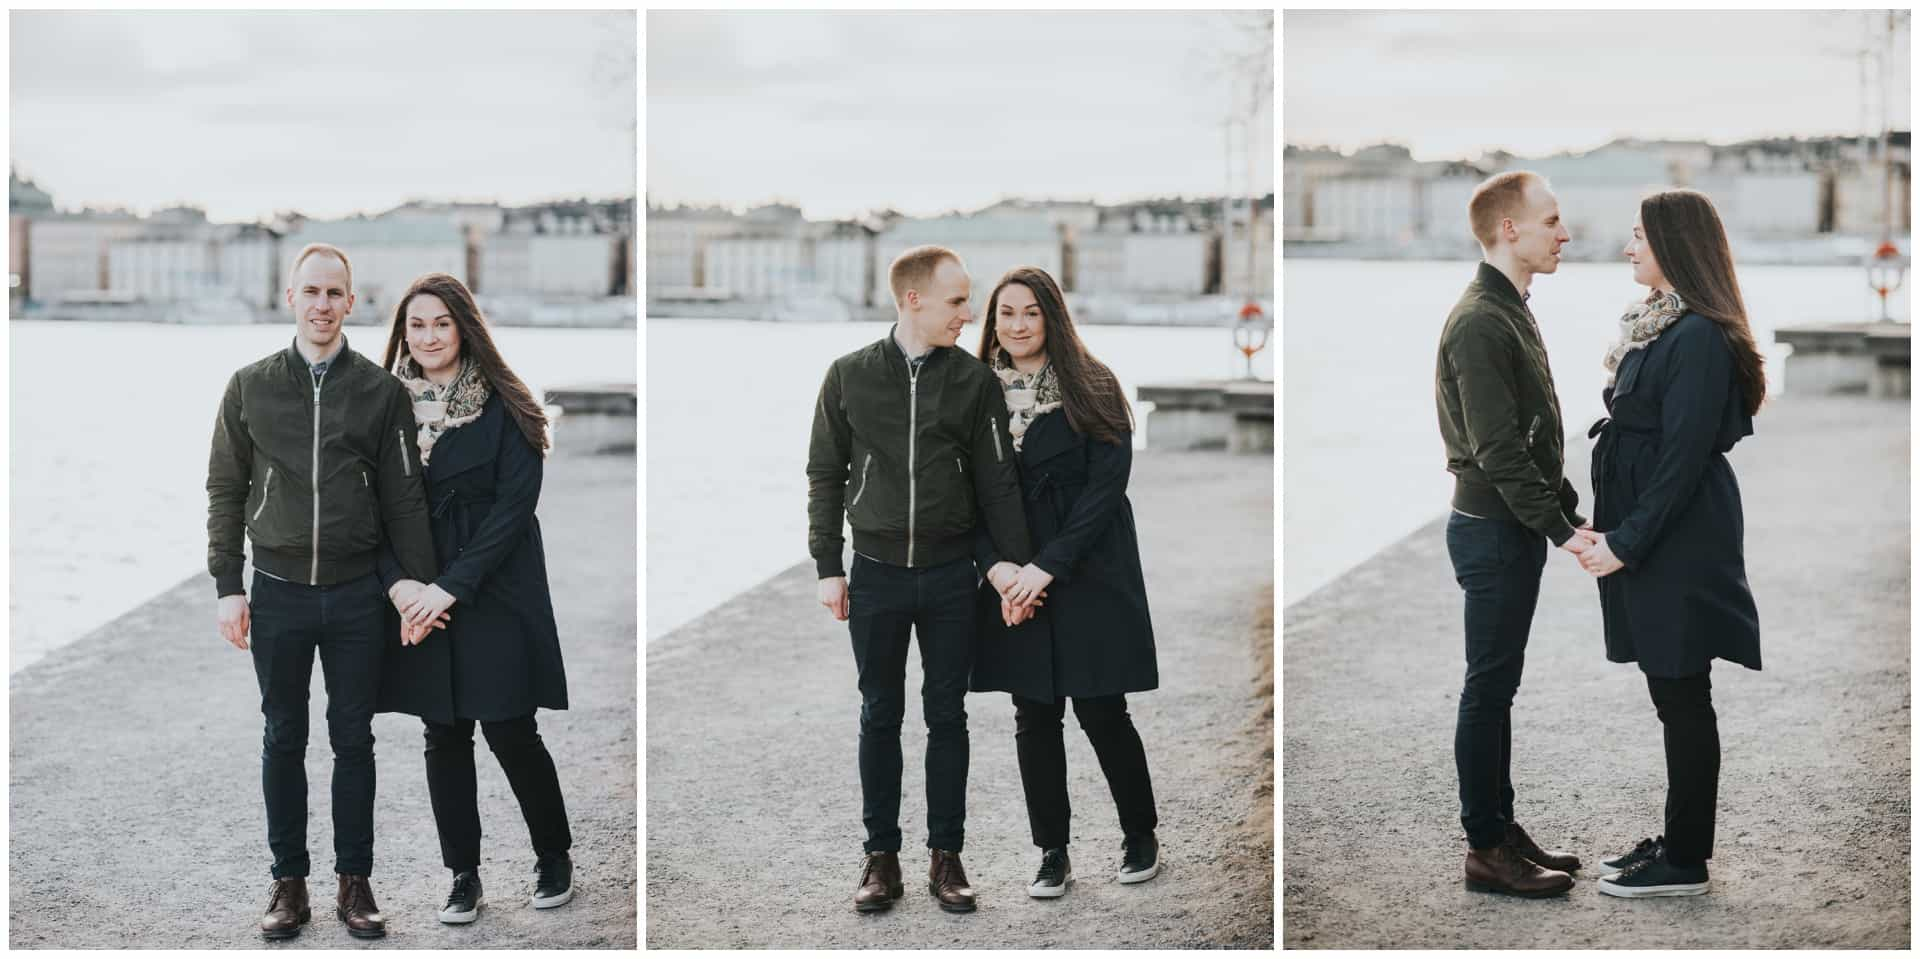 Couples session on a chilly day in Stockholm, parfotografering på Skeppsholmen, Stockholm